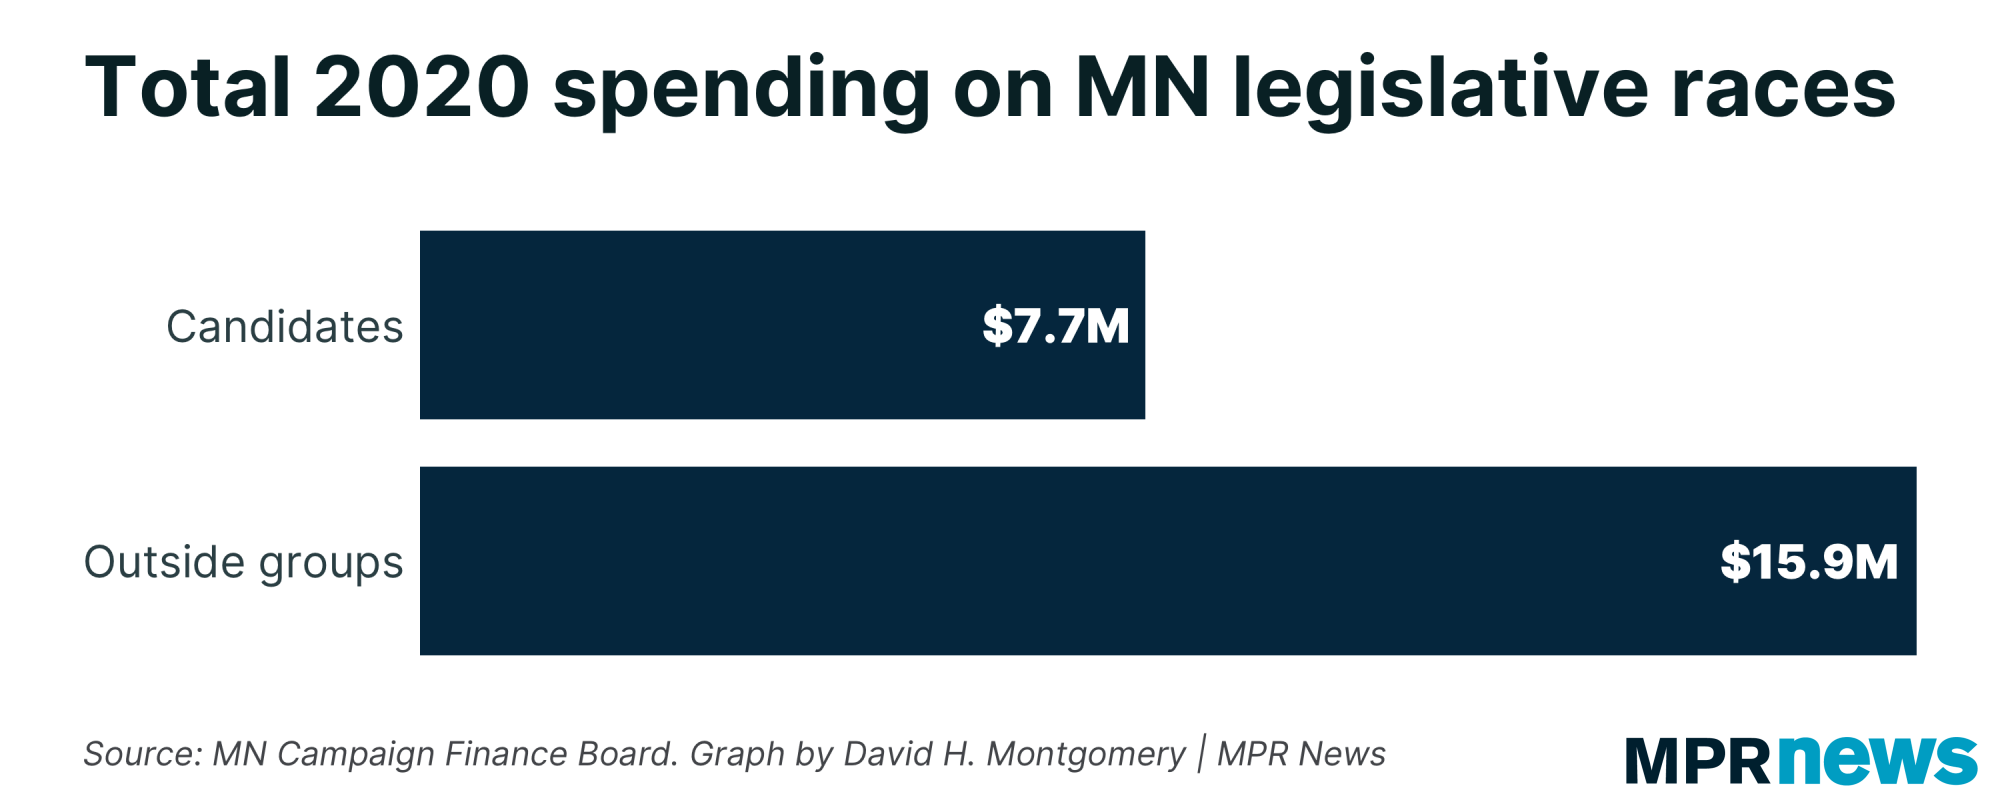 Total spending in 2020 MN legislative races by candidates, outside groups